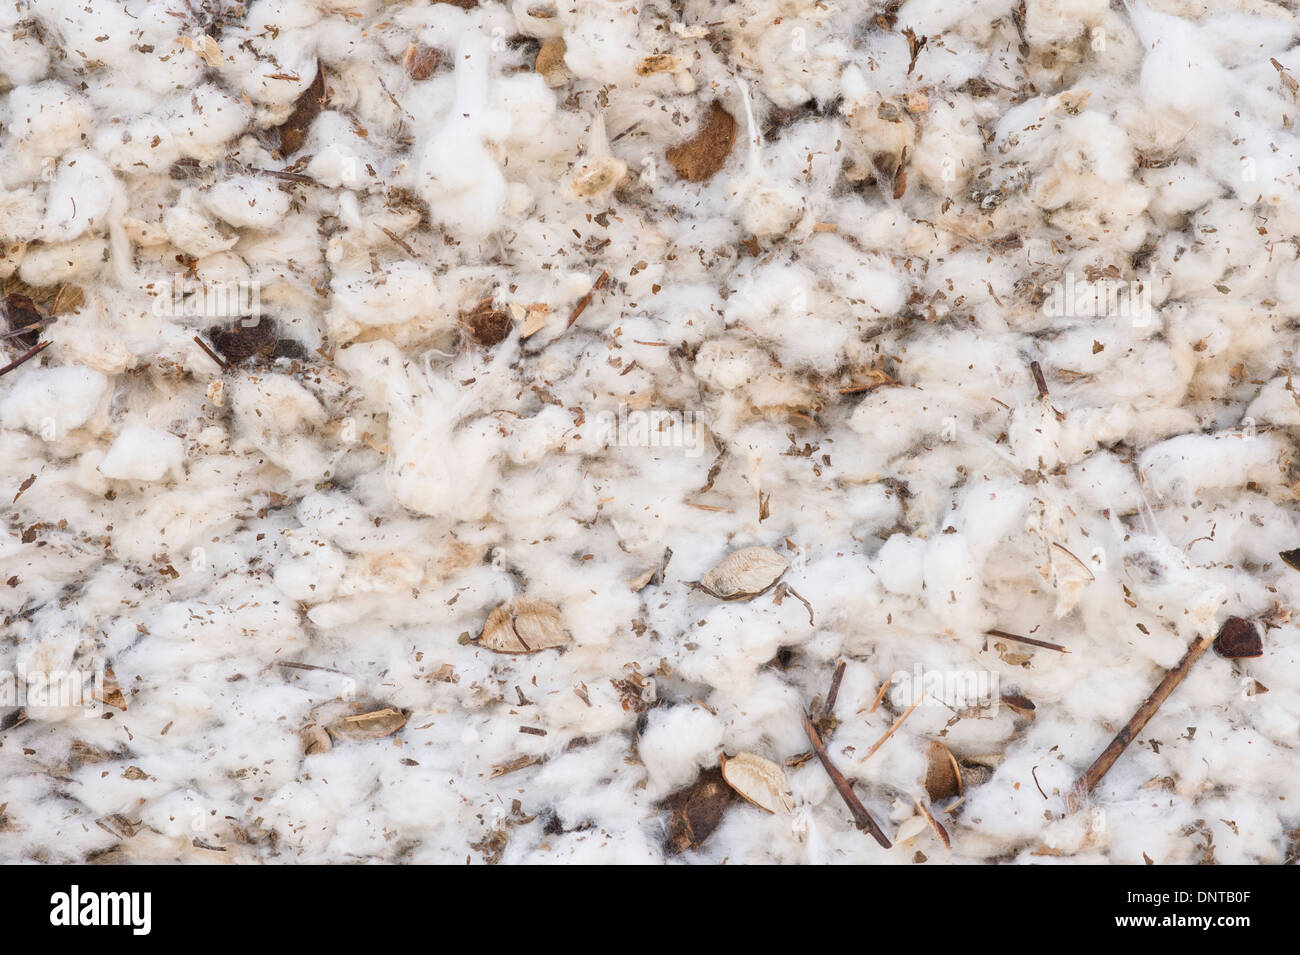 Cotton fields in Texas - Stock Image